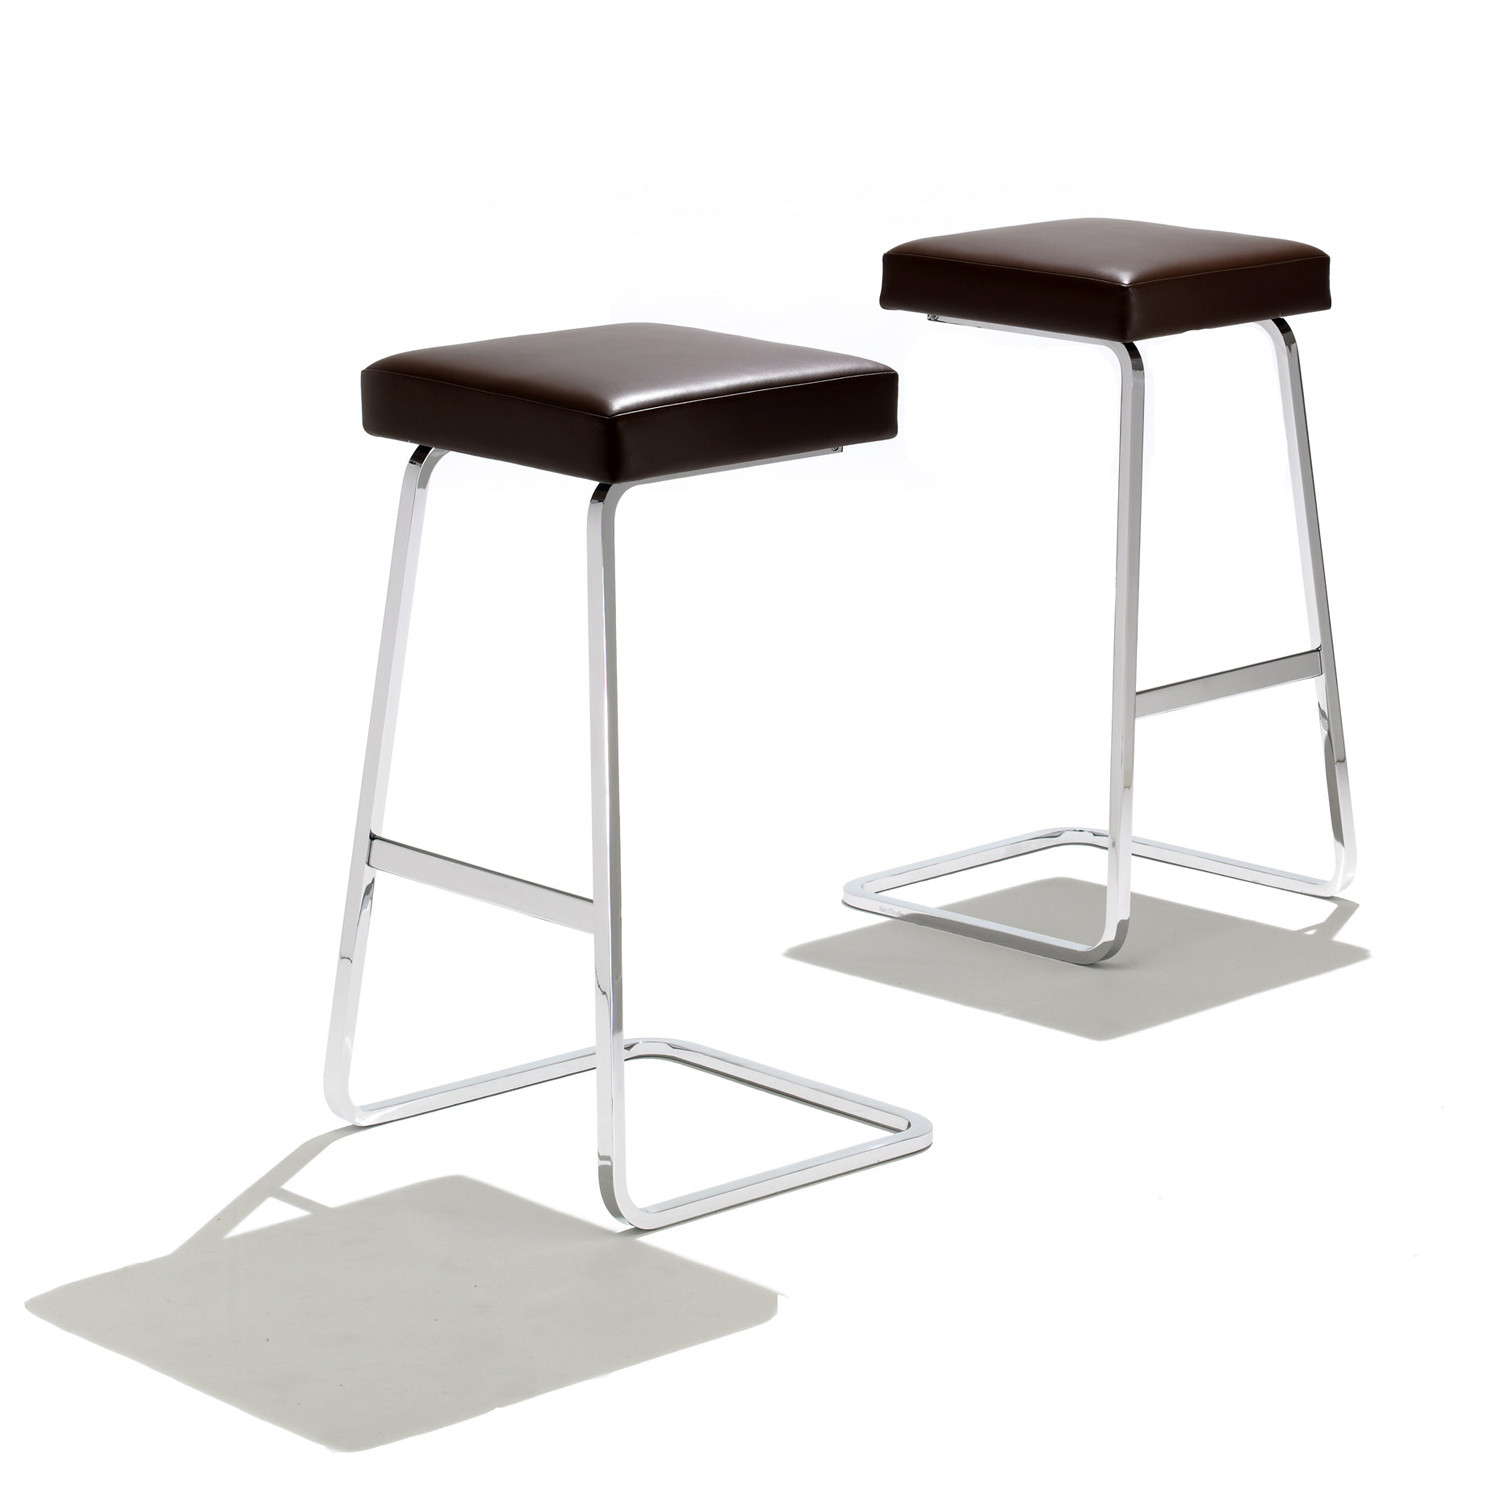 Four Seasons Barstools by Knoll